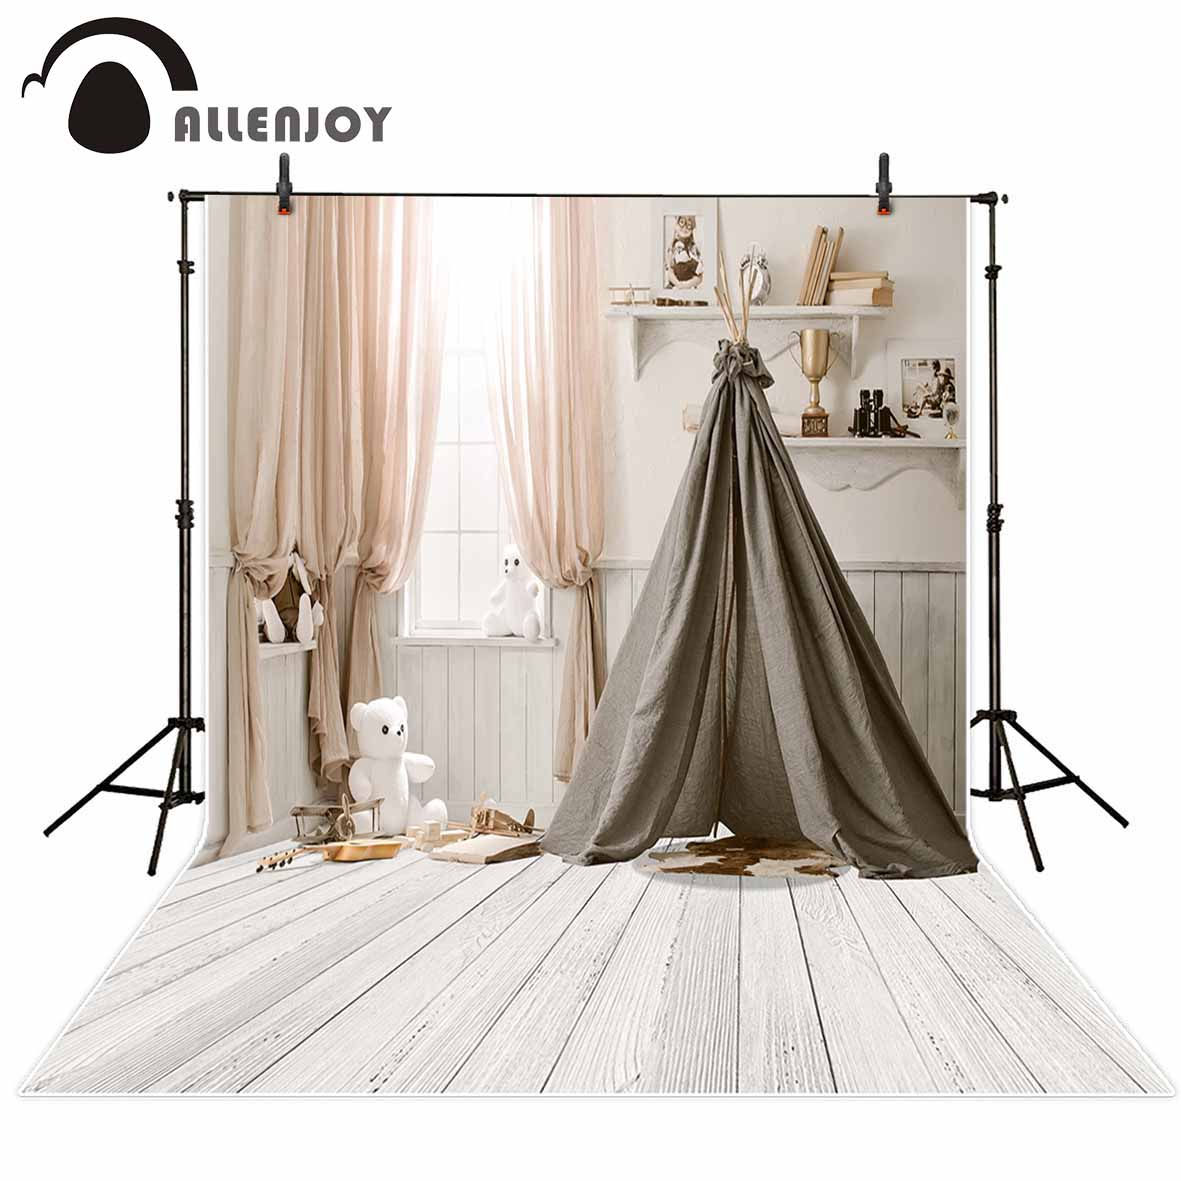 Allenjoy baby tent white wood floor backdrop board indoor room curtain lovely baby shower photography background photo studio baby bed curtain kamimi children room decoration crib netting baby tent cotton hung dome baby mosquito net photography props